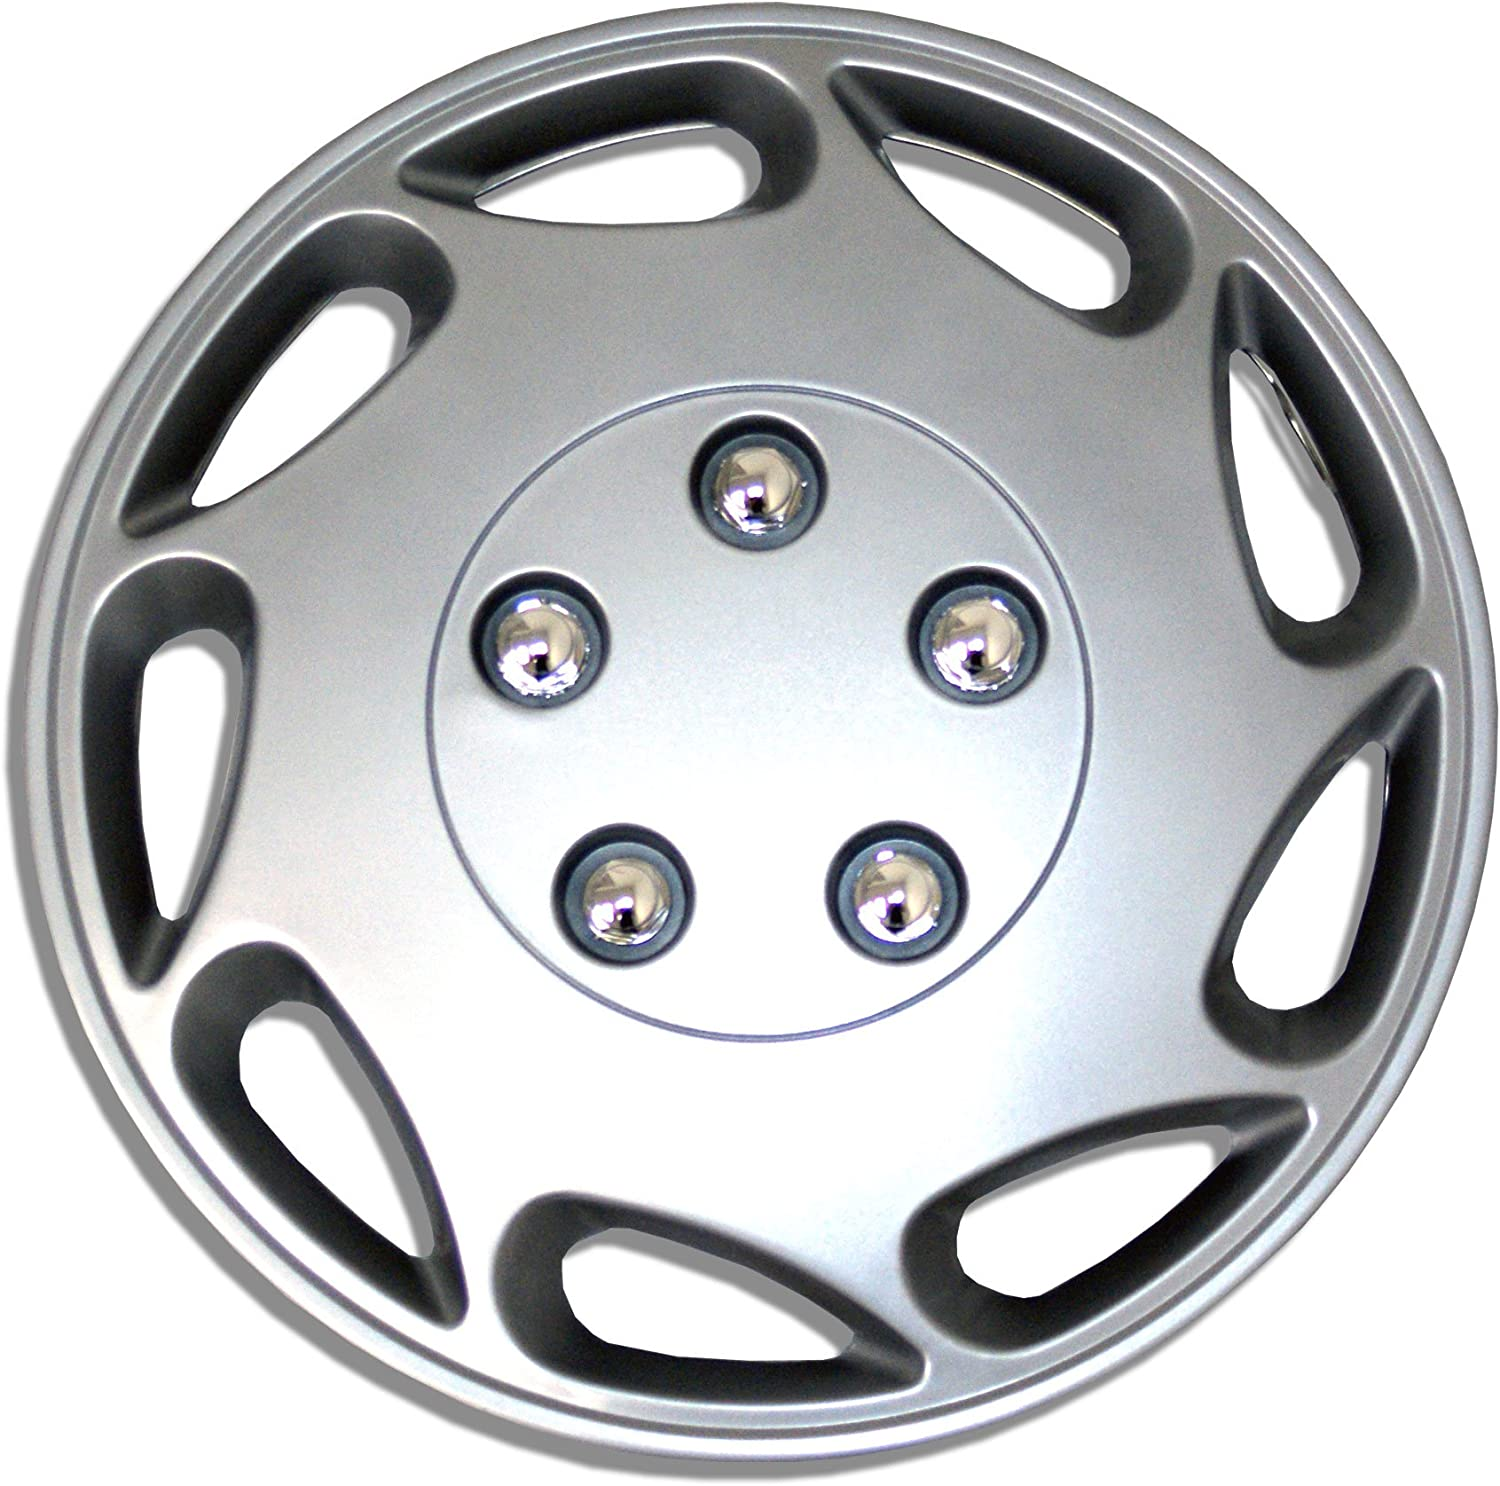 TuningPros WC-15-807-S 15-Inches-Silver Improved Hubcaps Wheel Skin Cover Set of 4